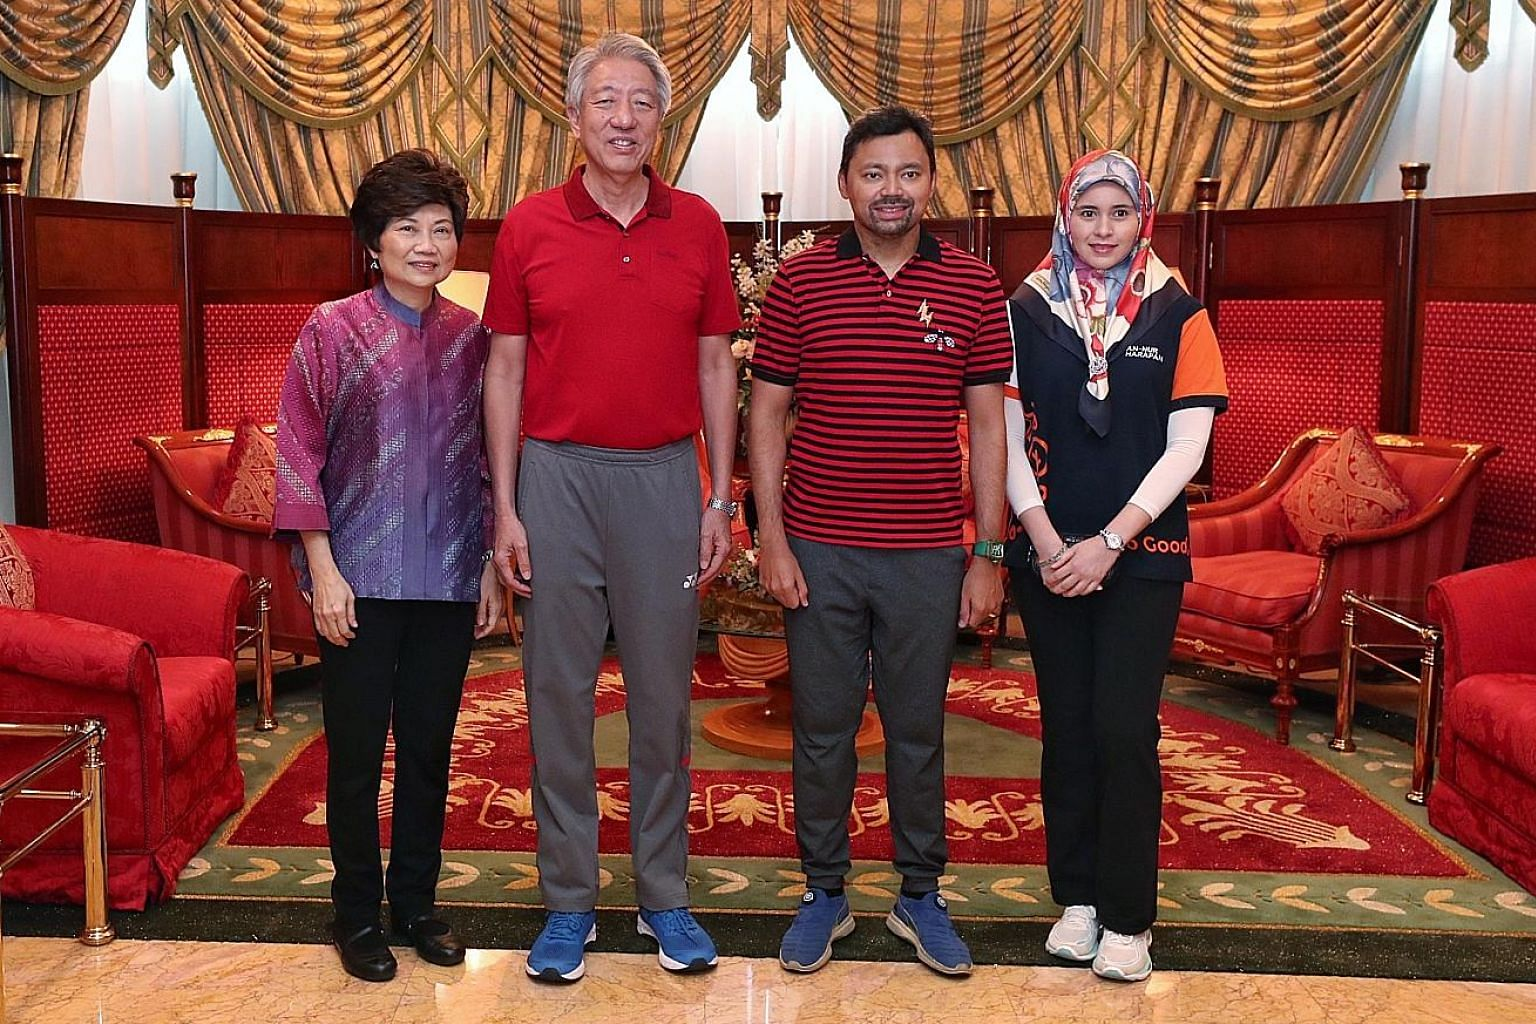 Senior Minister Teo Chee Hean and Mrs Teo with Brunei Crown Prince Haji Al-Muhtadee Billah and Princess Sarah yesterday. Fresh from visits to farms and food production facilities in Brunei during a four-day visit, SM Teo said yesterday that both coun